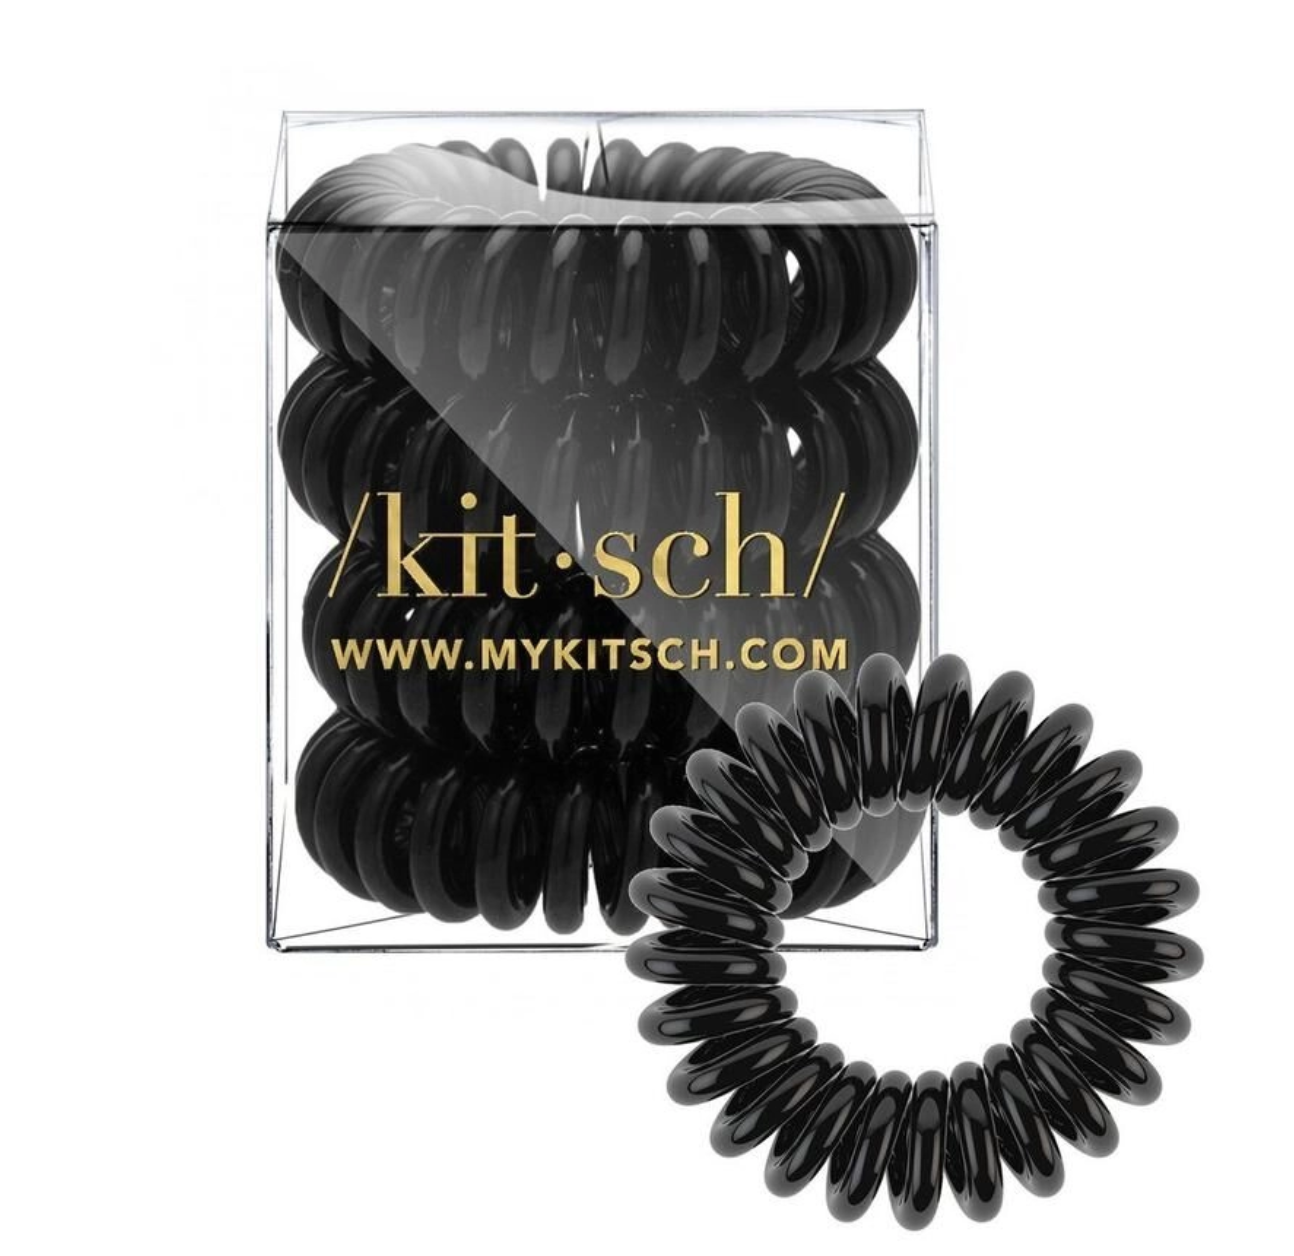 Kitsch Black Hair Coils - Pack of 4